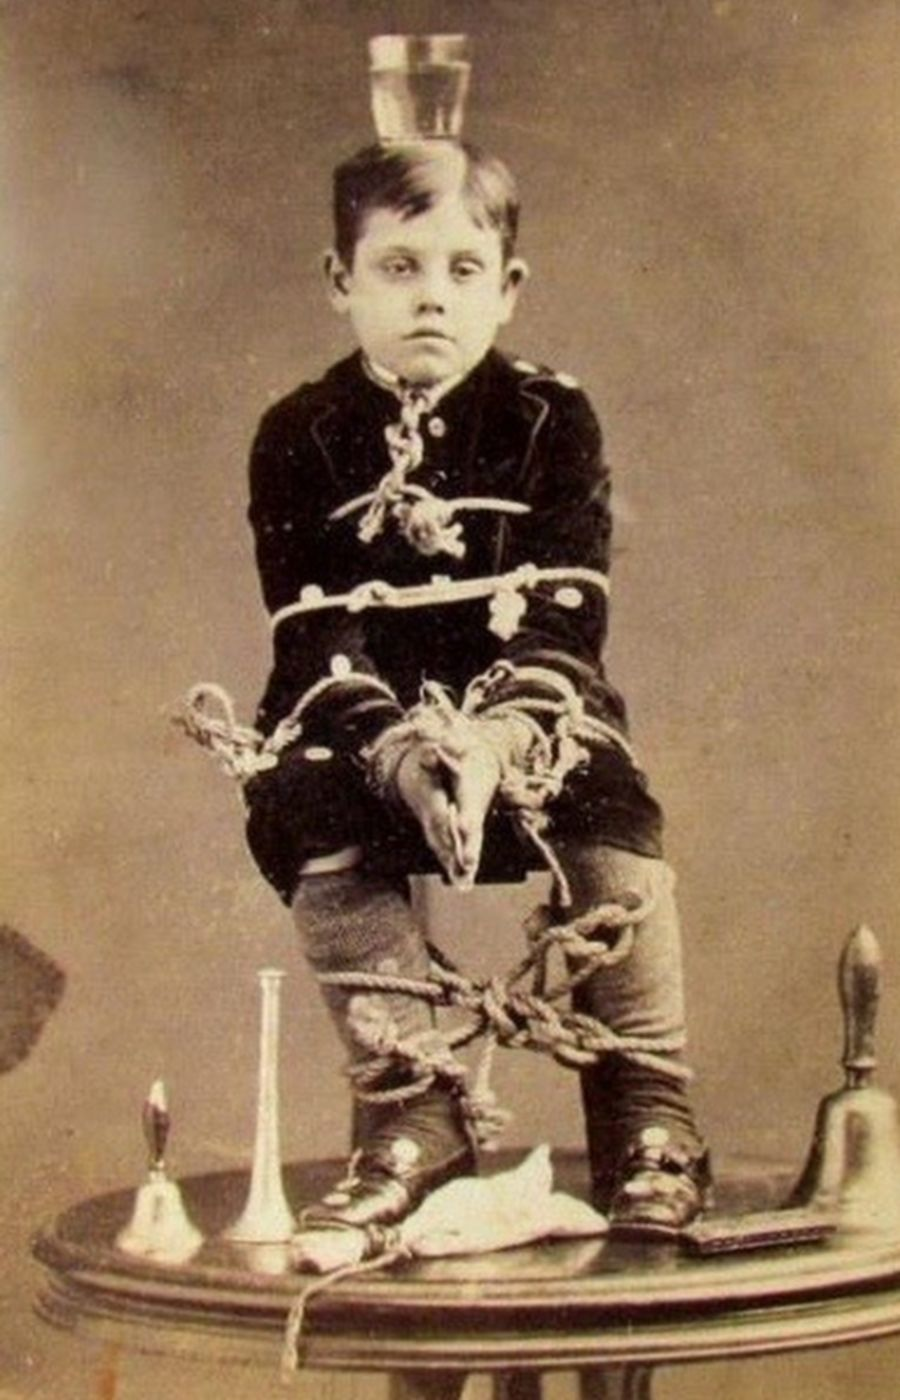 slipshod-child tied in chair